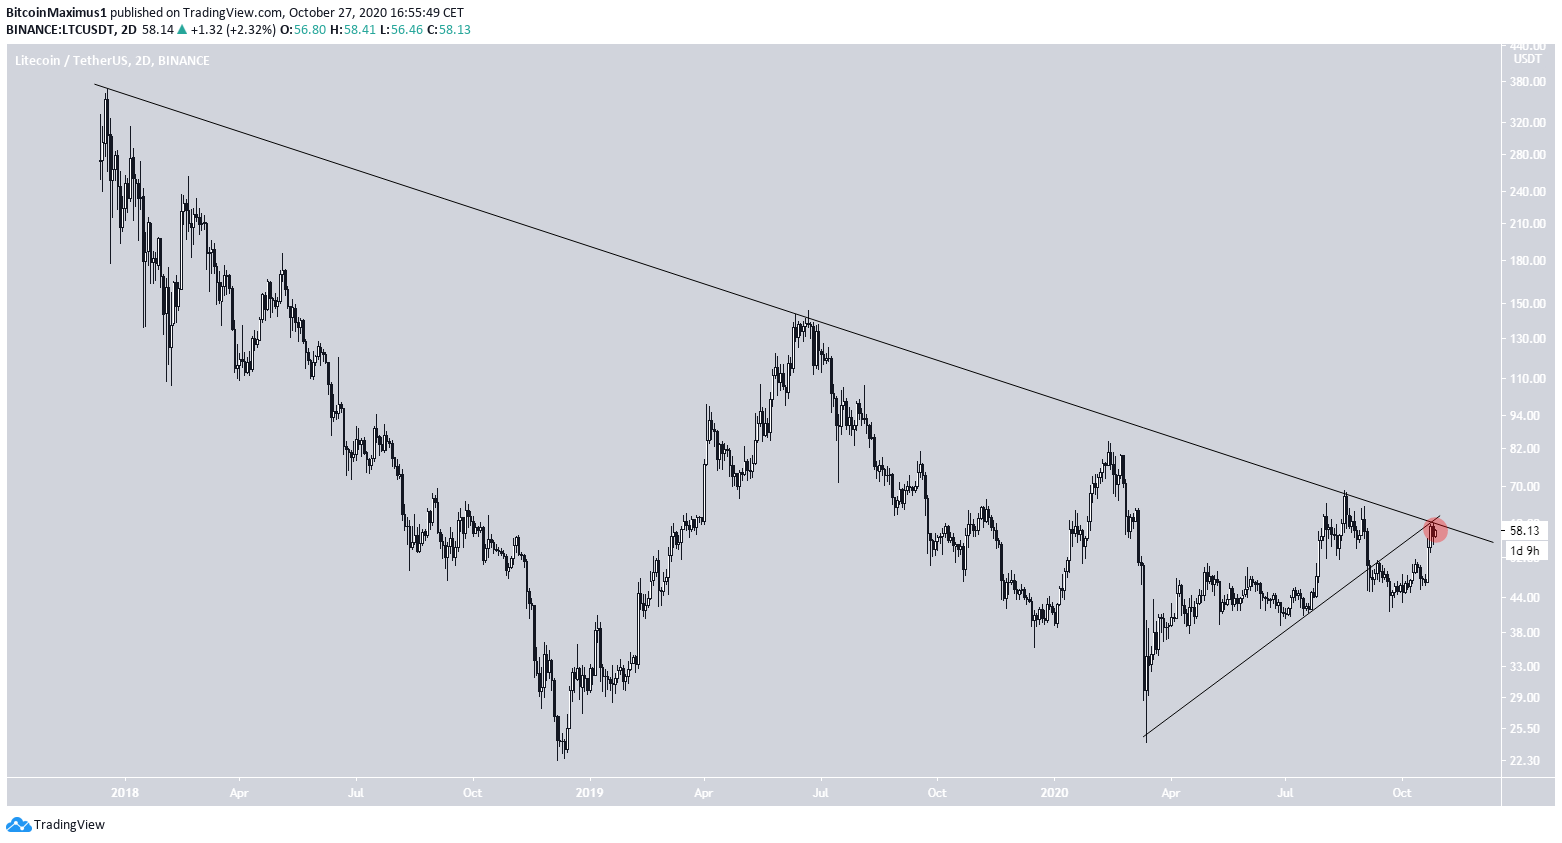 LTC Weekly Resistance Levels